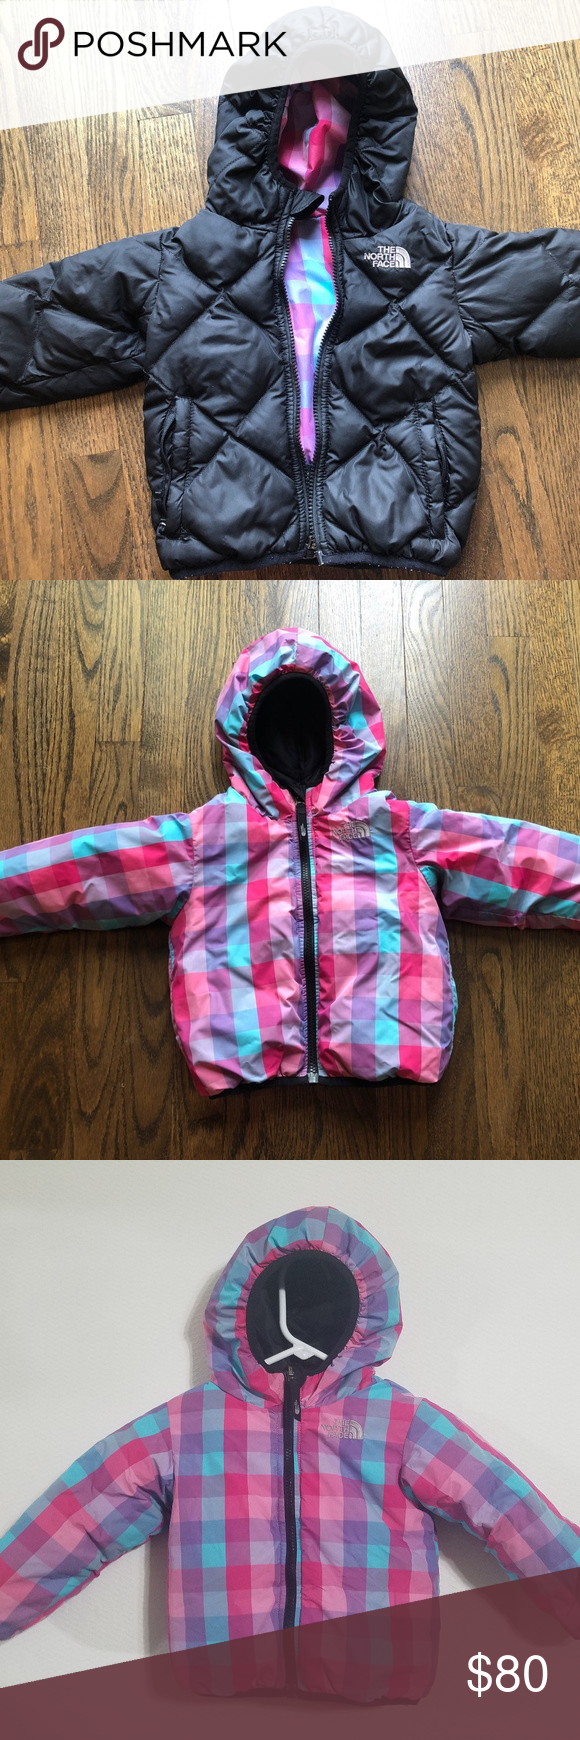 The North Face Girls 2t Winter Puffer Jacket Coat North Face Girls Winter Puffer Jackets Toddler Jacket [ 1740 x 580 Pixel ]